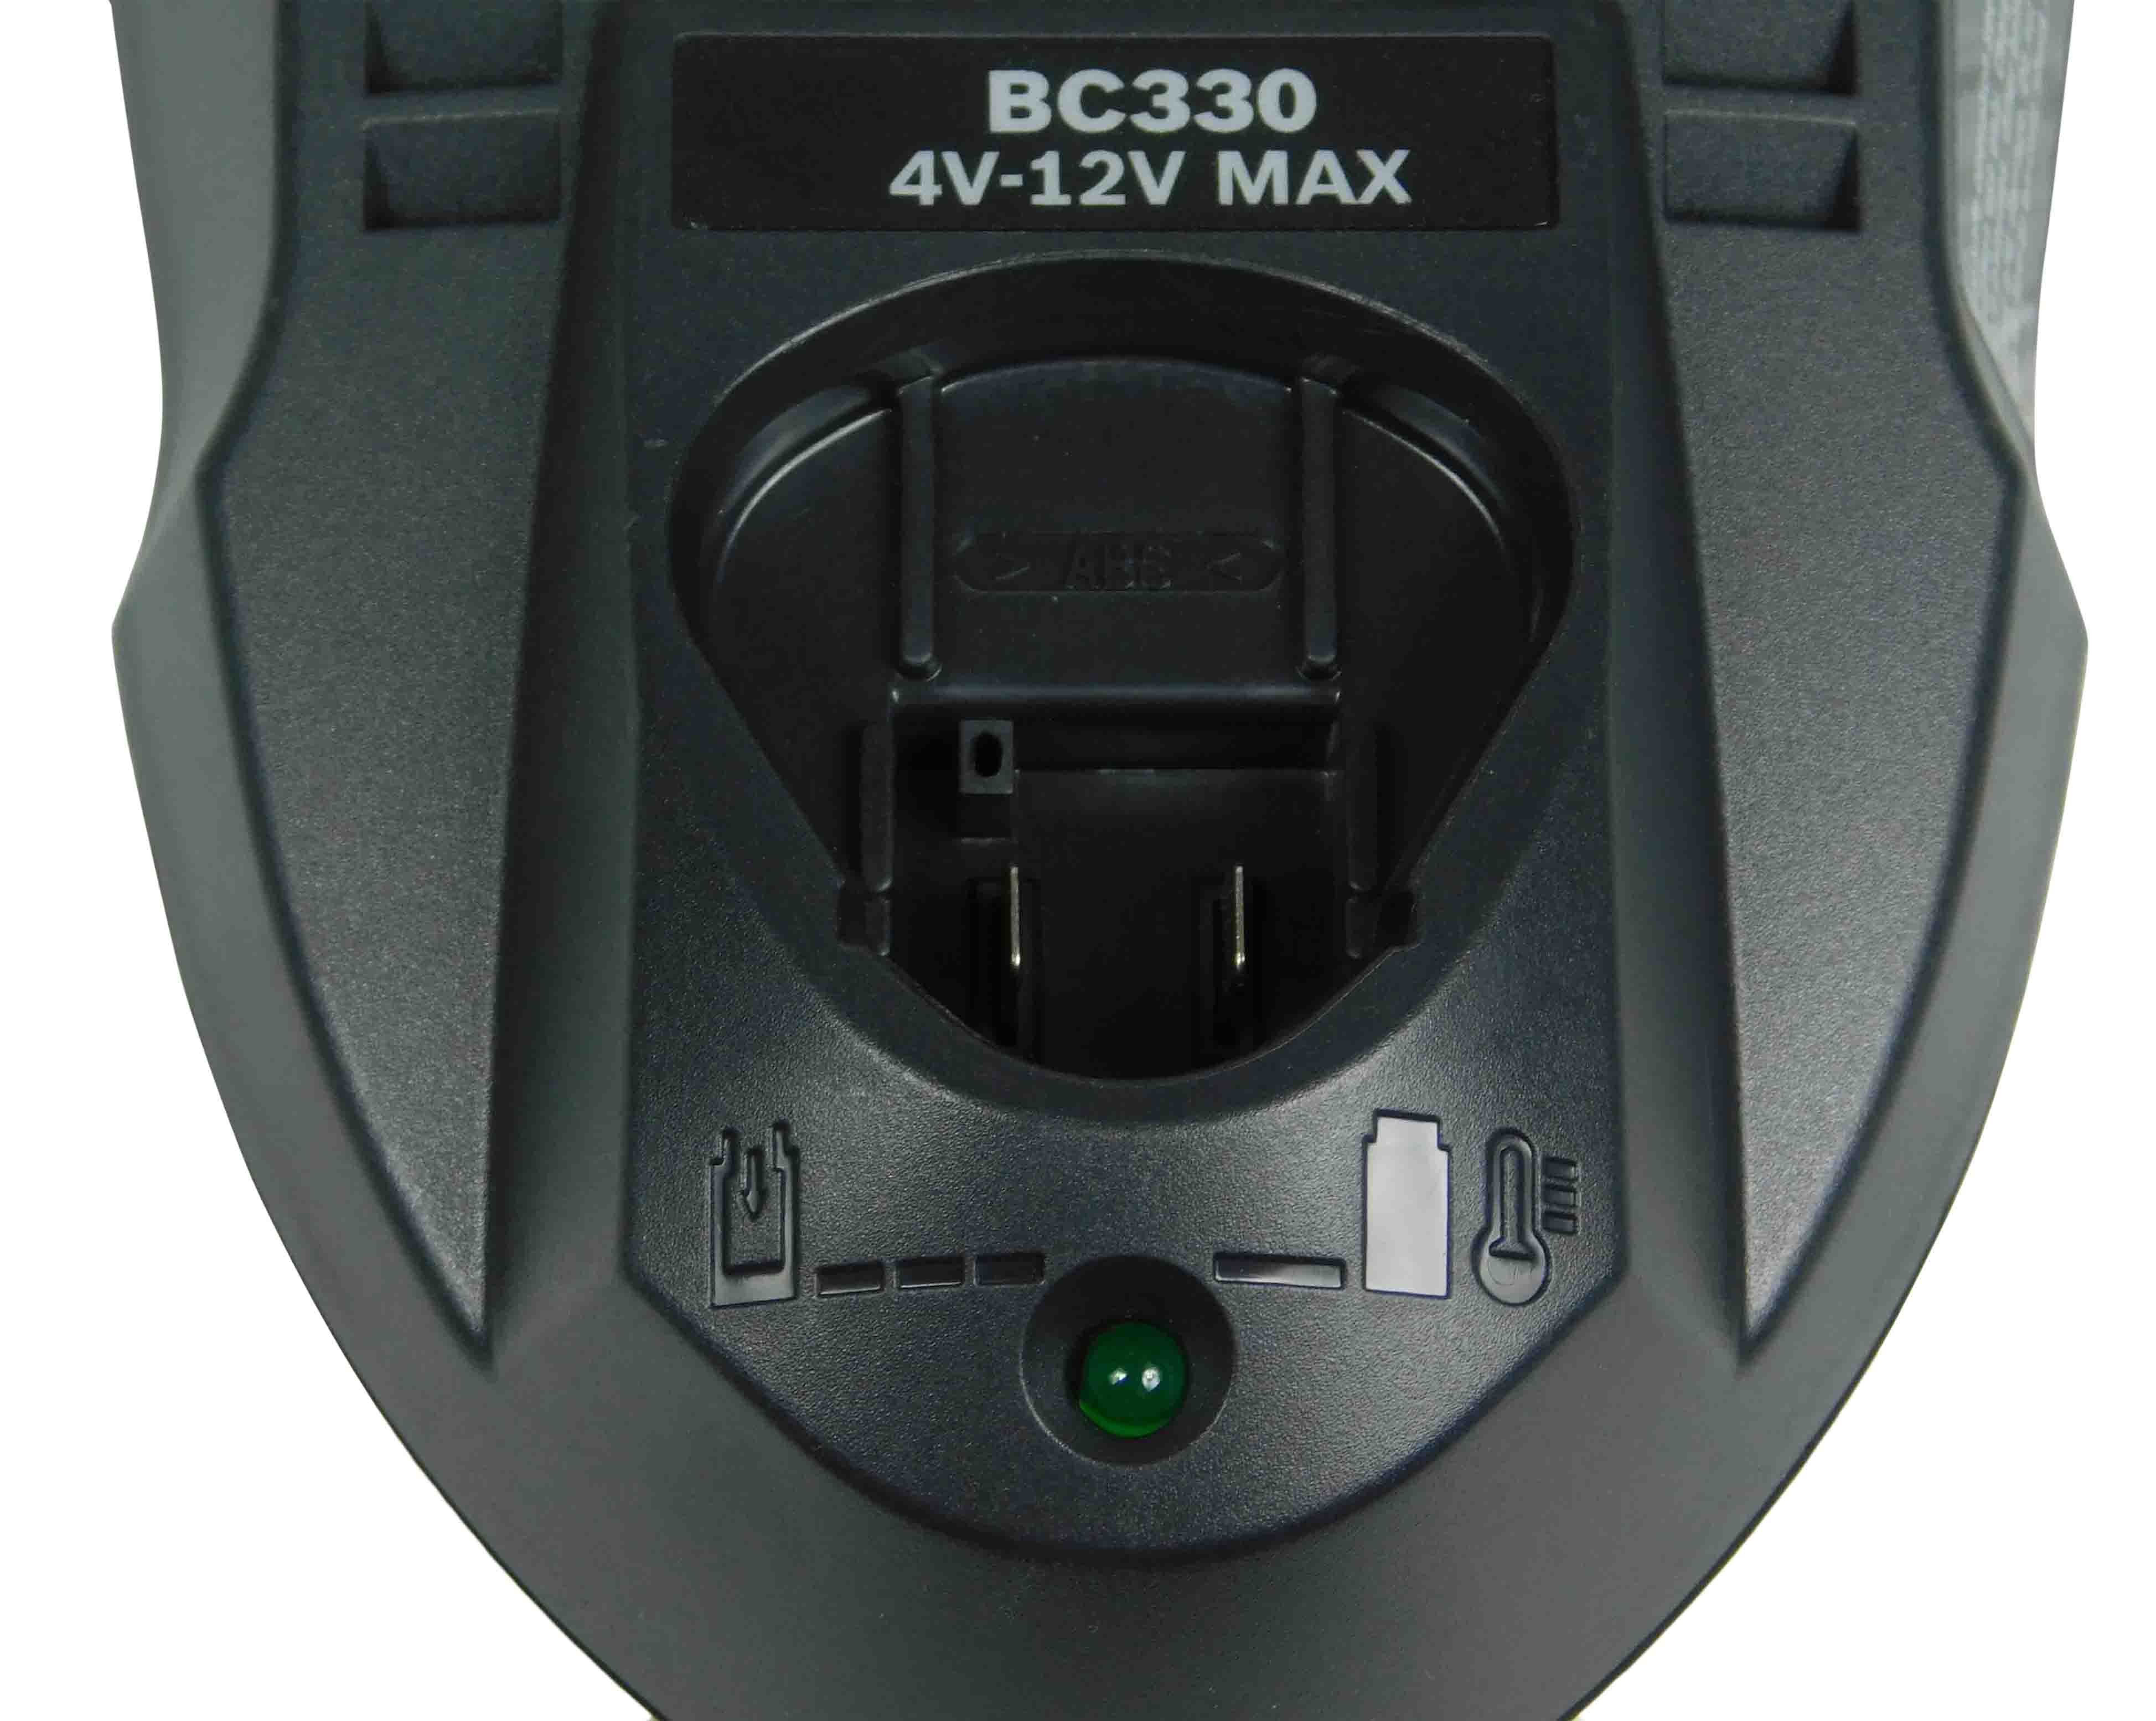 Bosch-BC330-12V-Lithium-Ion-Battery-Charger-image-4